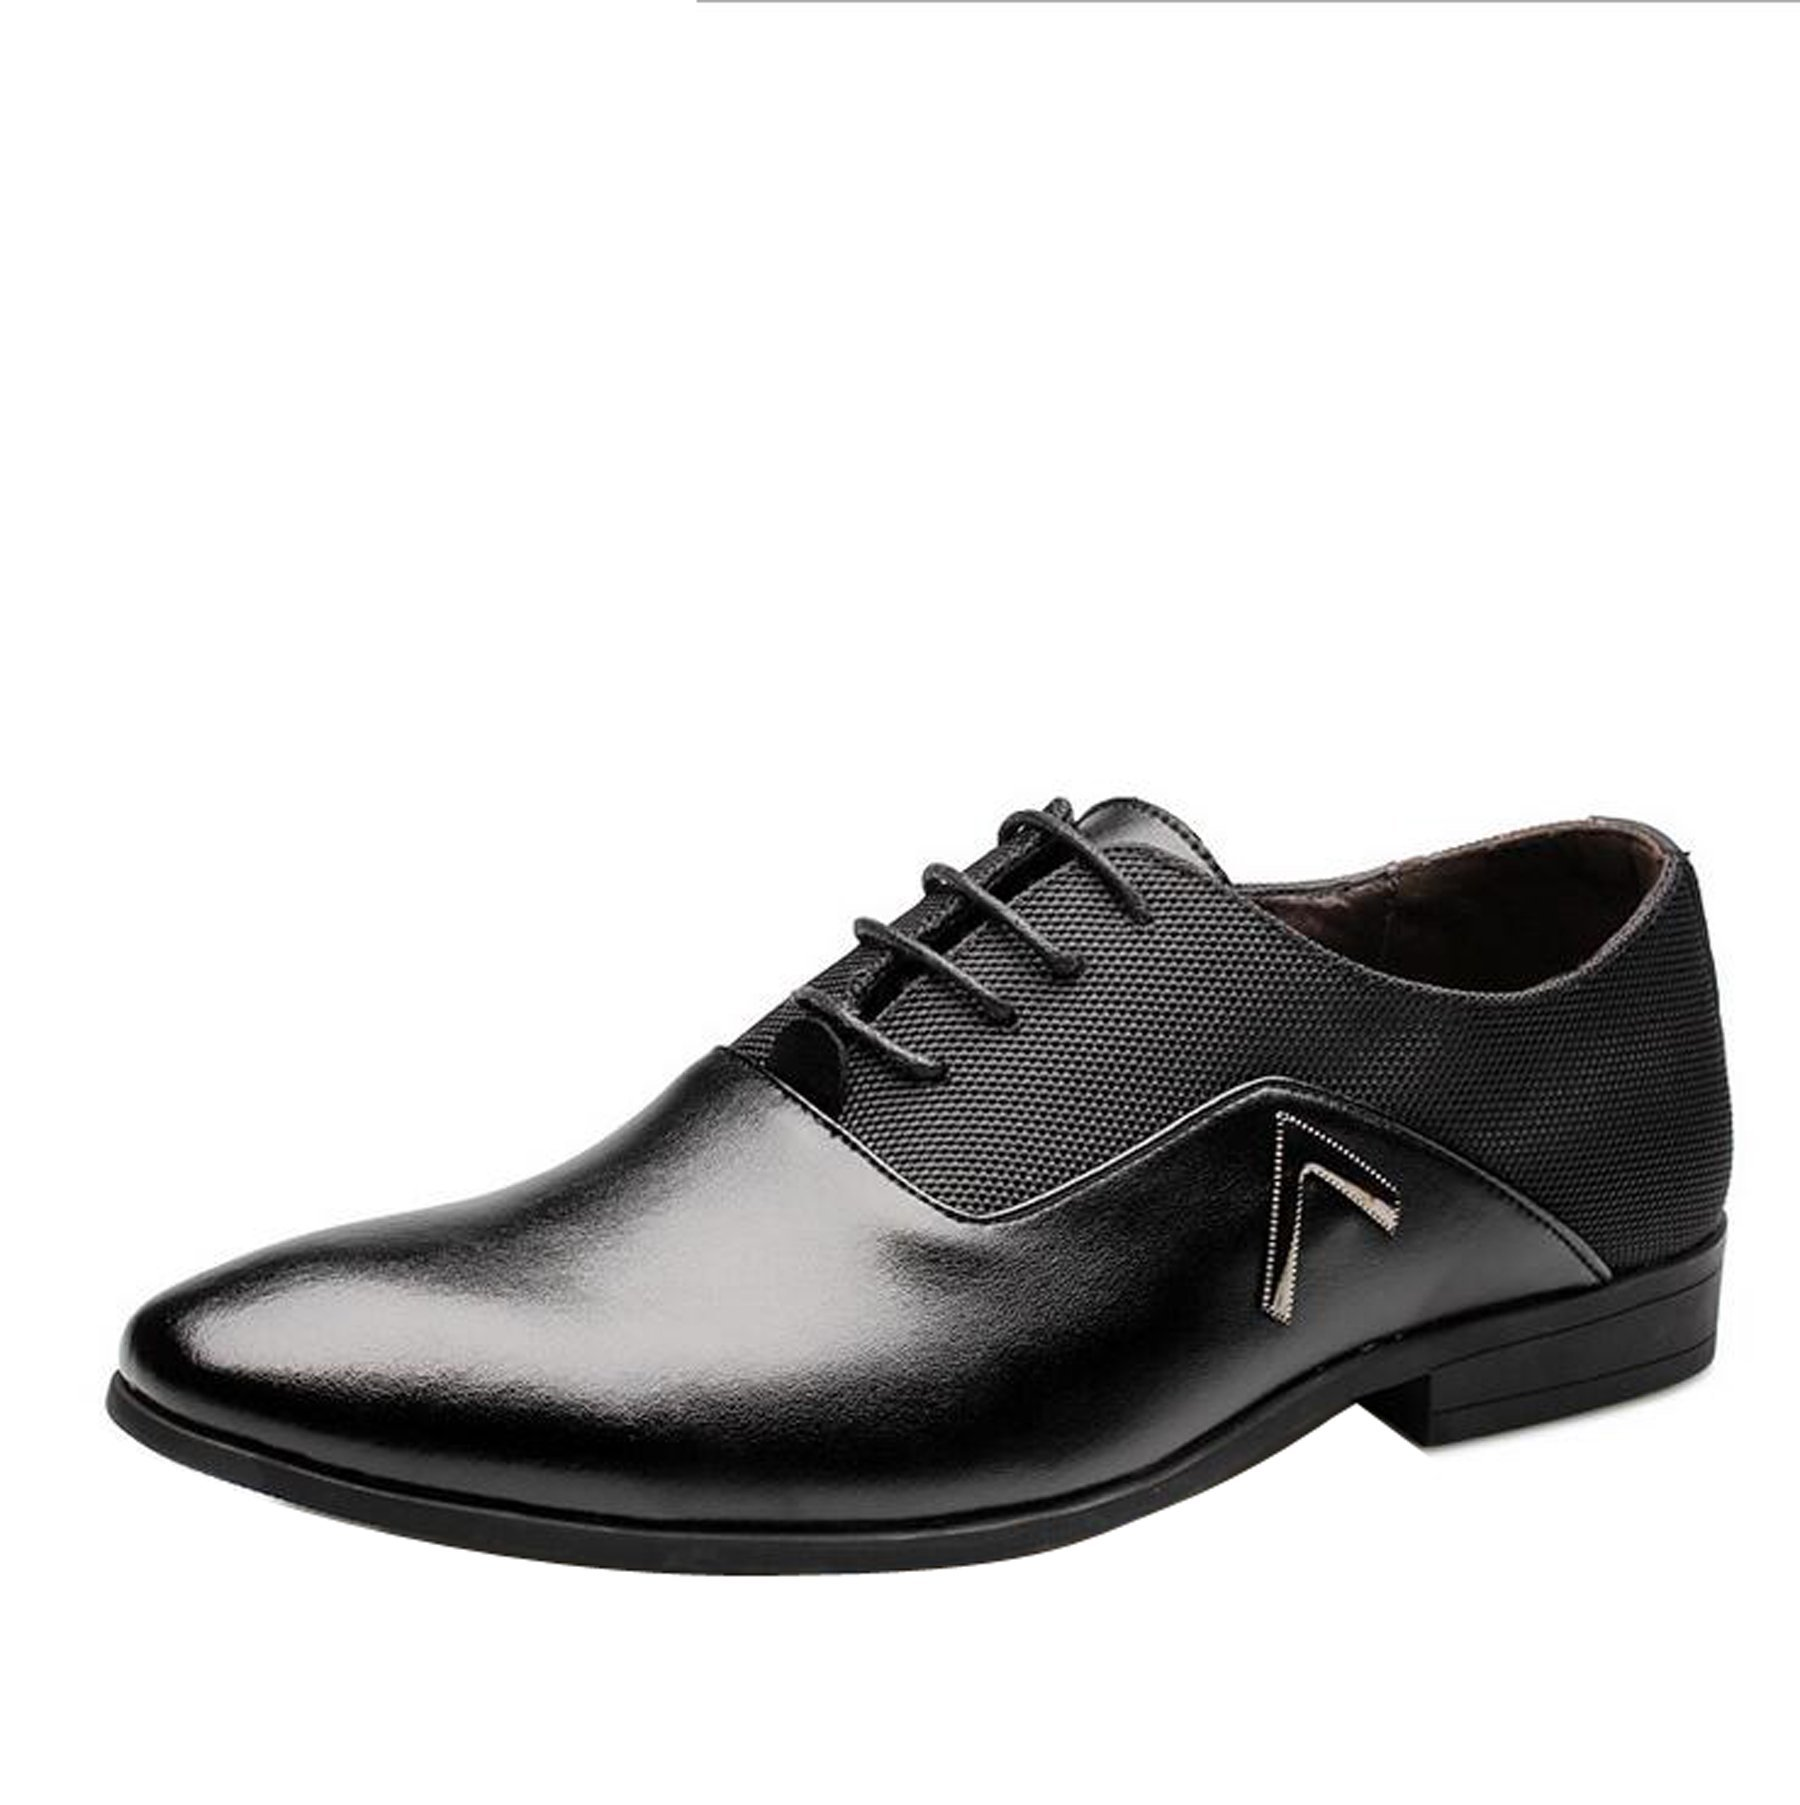 Men Pointed Toe Business Dress Formal Leather Shoes Flat Oxfords Loafers Slip On by Gaorui (Image #2)